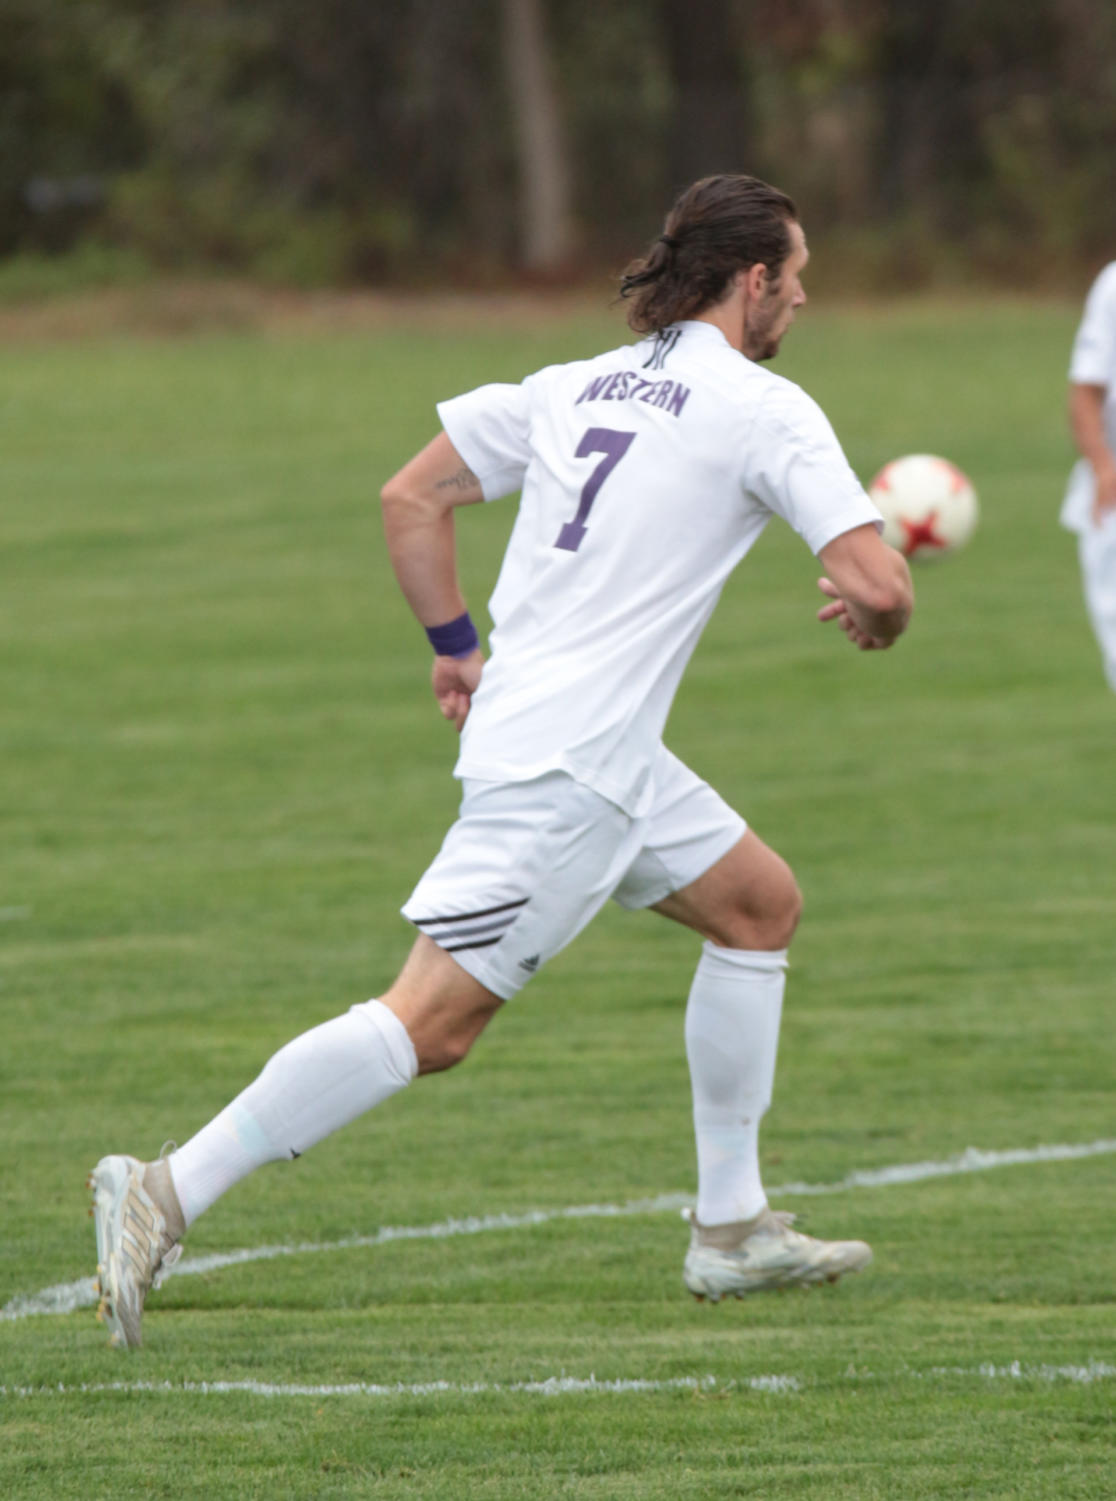 Drew Whalen in position to receive the ball.